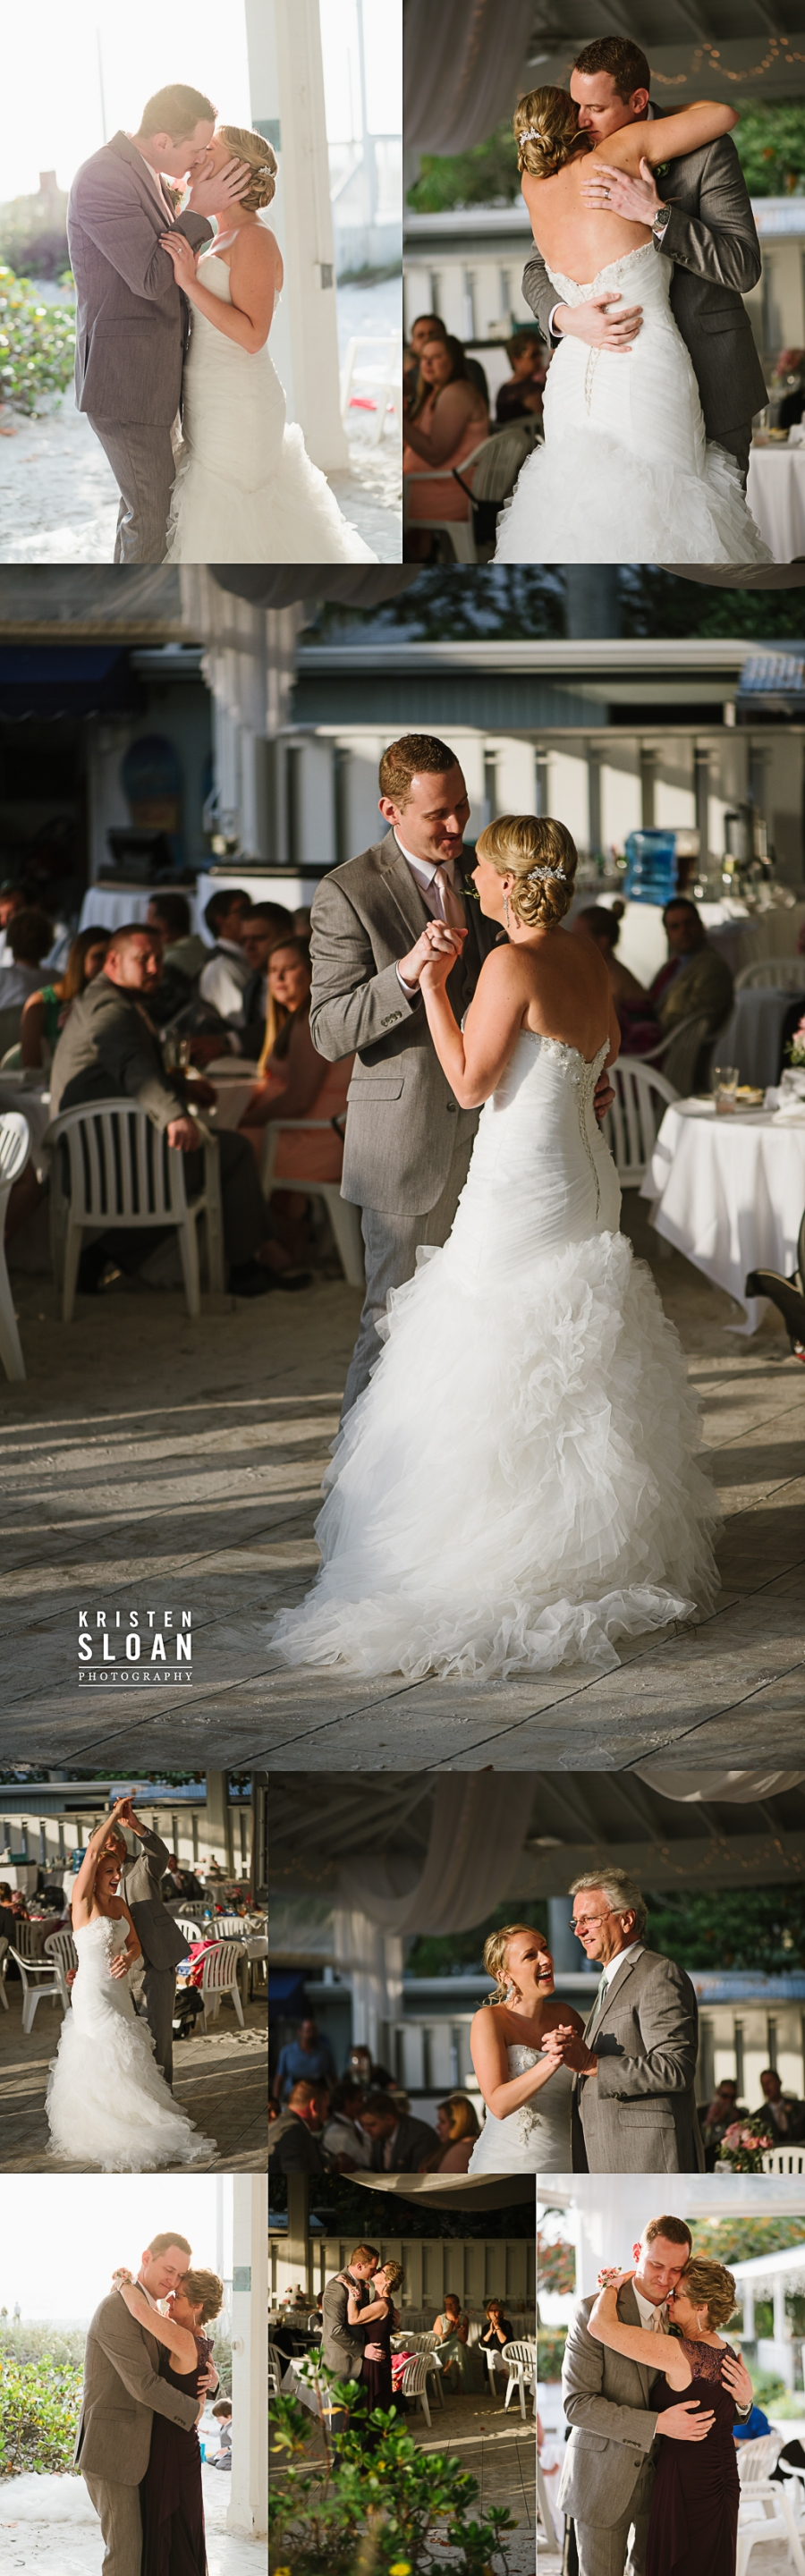 Anna Maria Island Florida Beach Wedding Photographer Kristen Sloan, Sandbar Restaurant Wedding Anna Maria Island Dancing